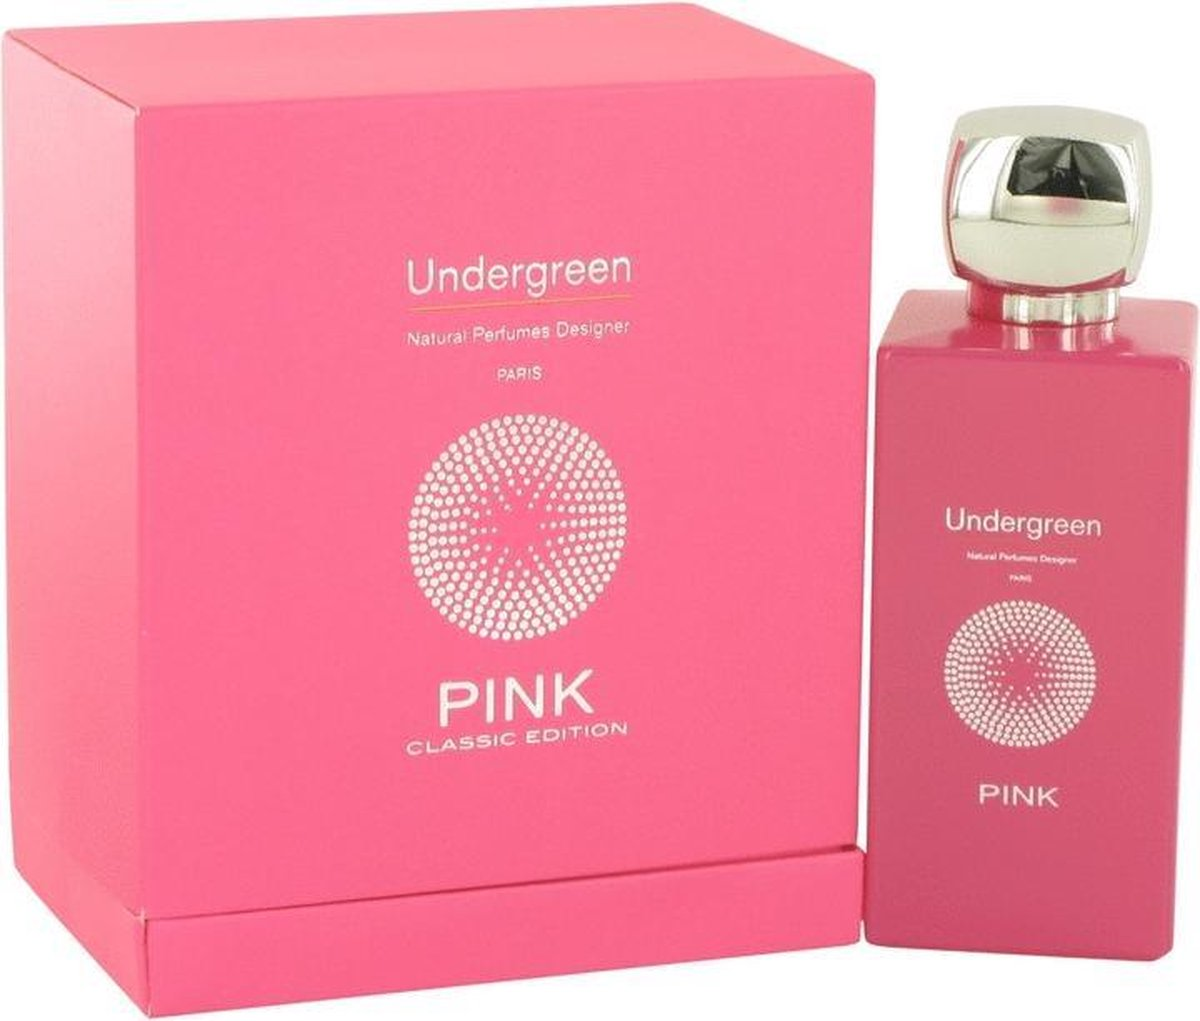 Eau De Parfum Spray (Unisex) 3.35 oz